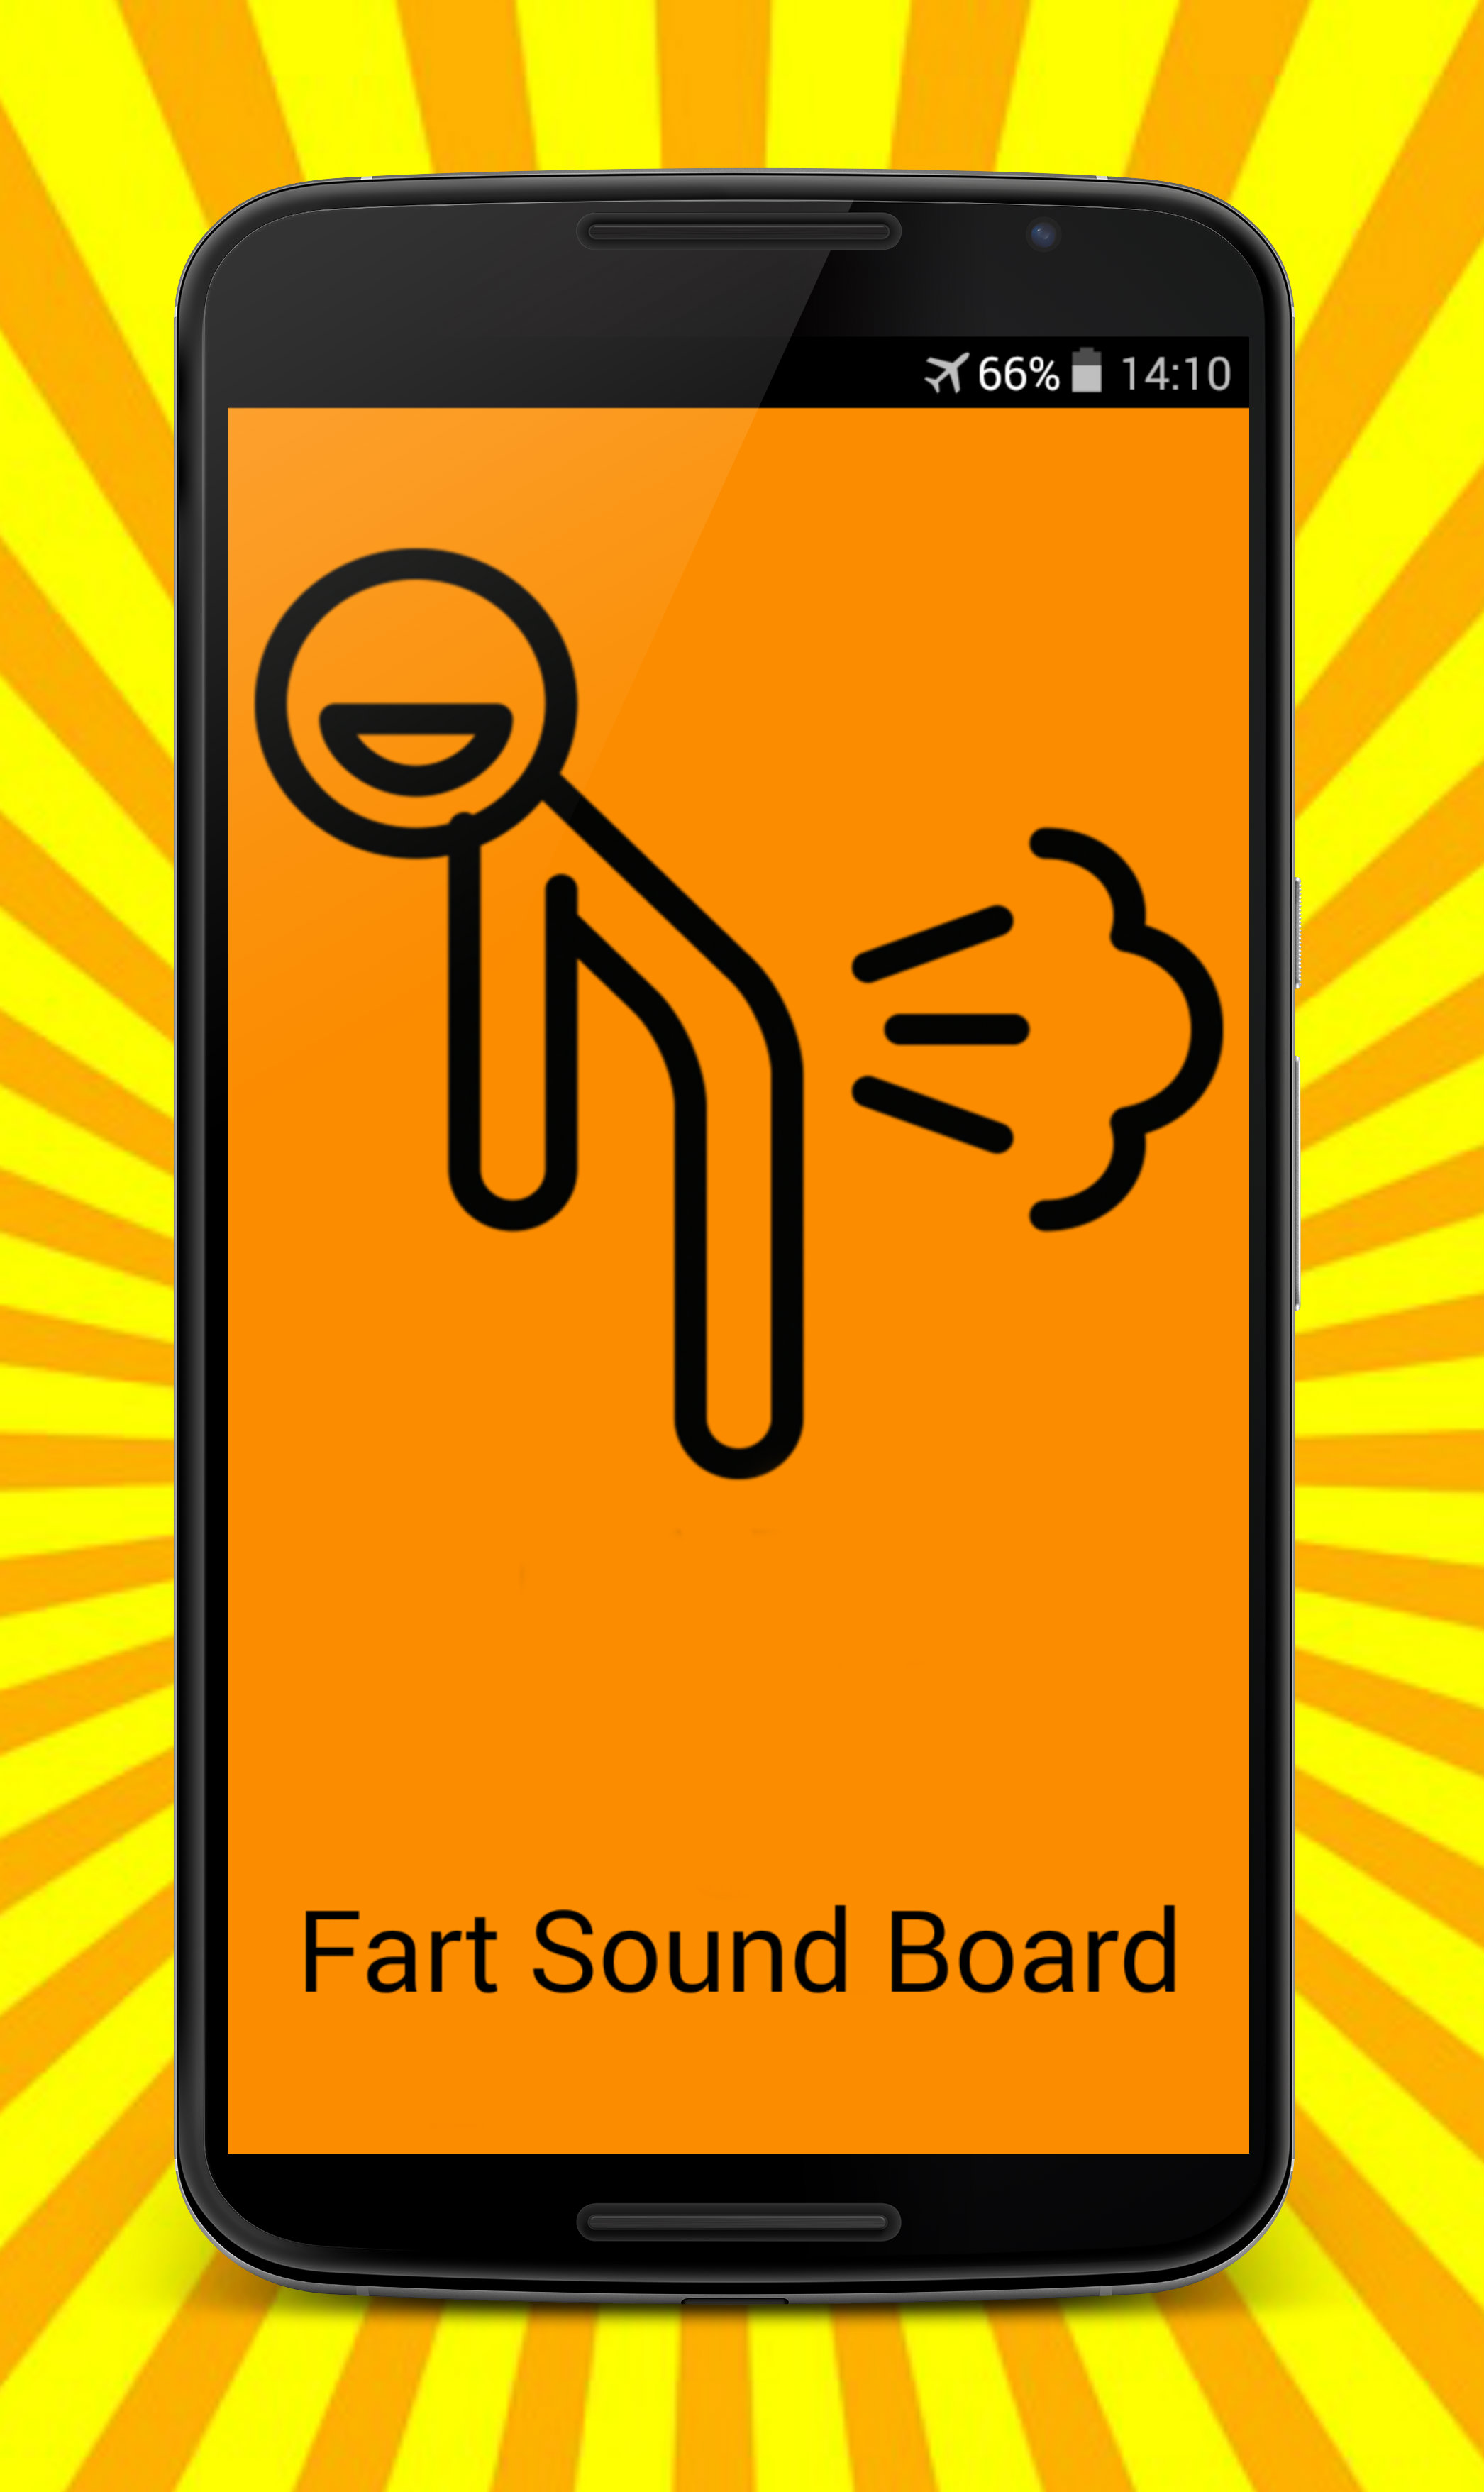 Fart sounds real